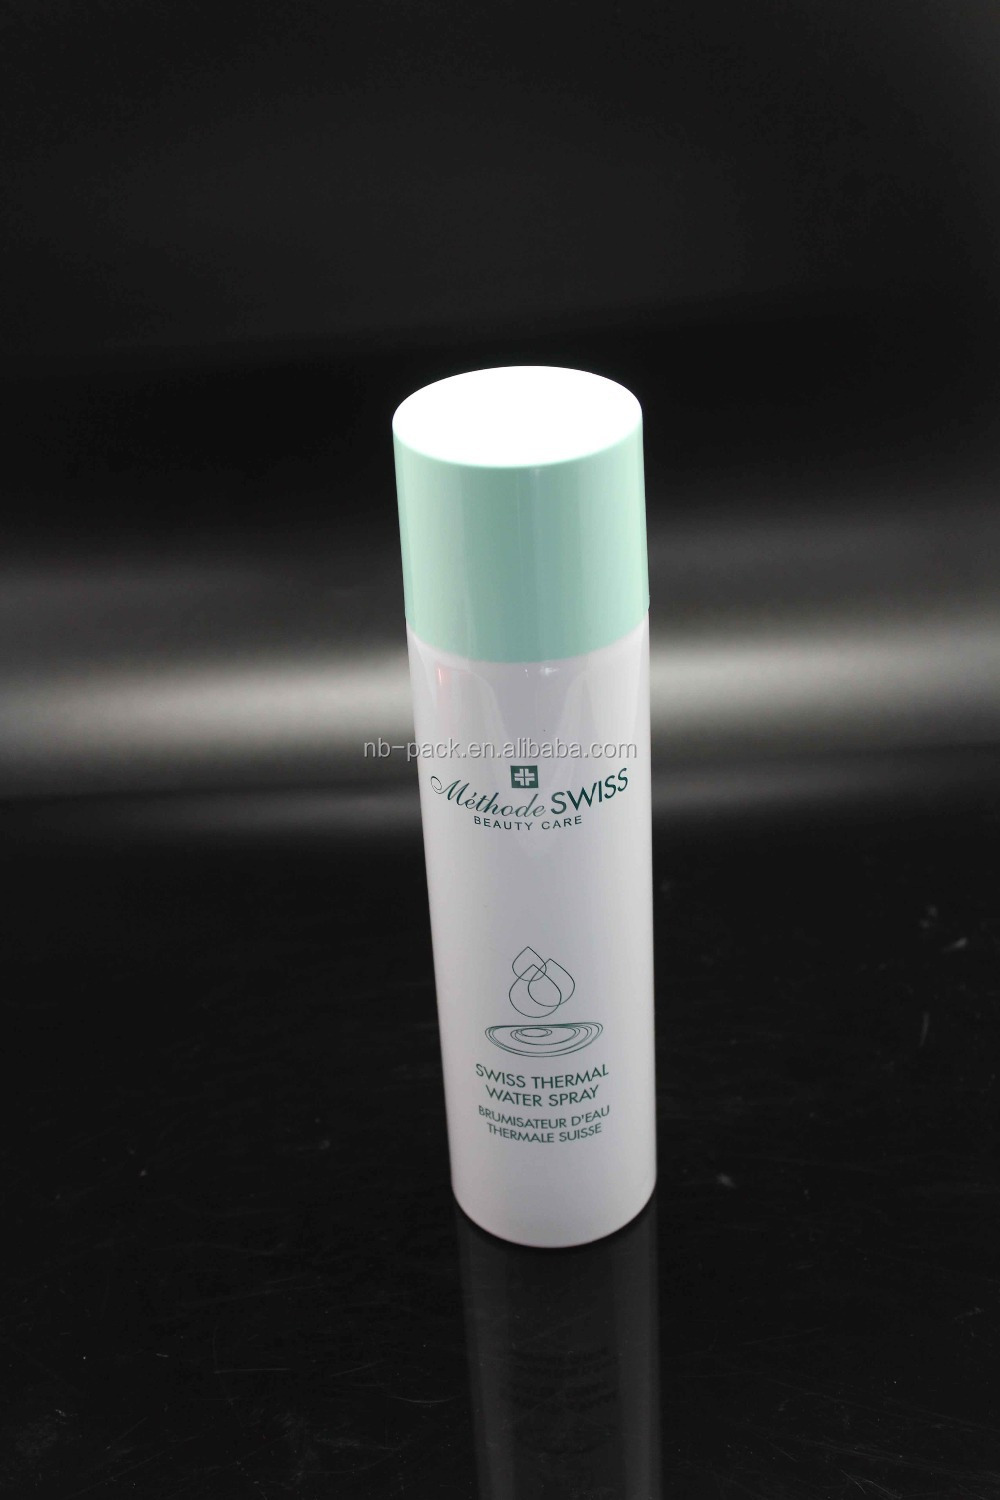 400ml Aerosol Empty Can For Spray Paint Buy Aluminum Aerosol Can Line Aerosol Refill Aerosol